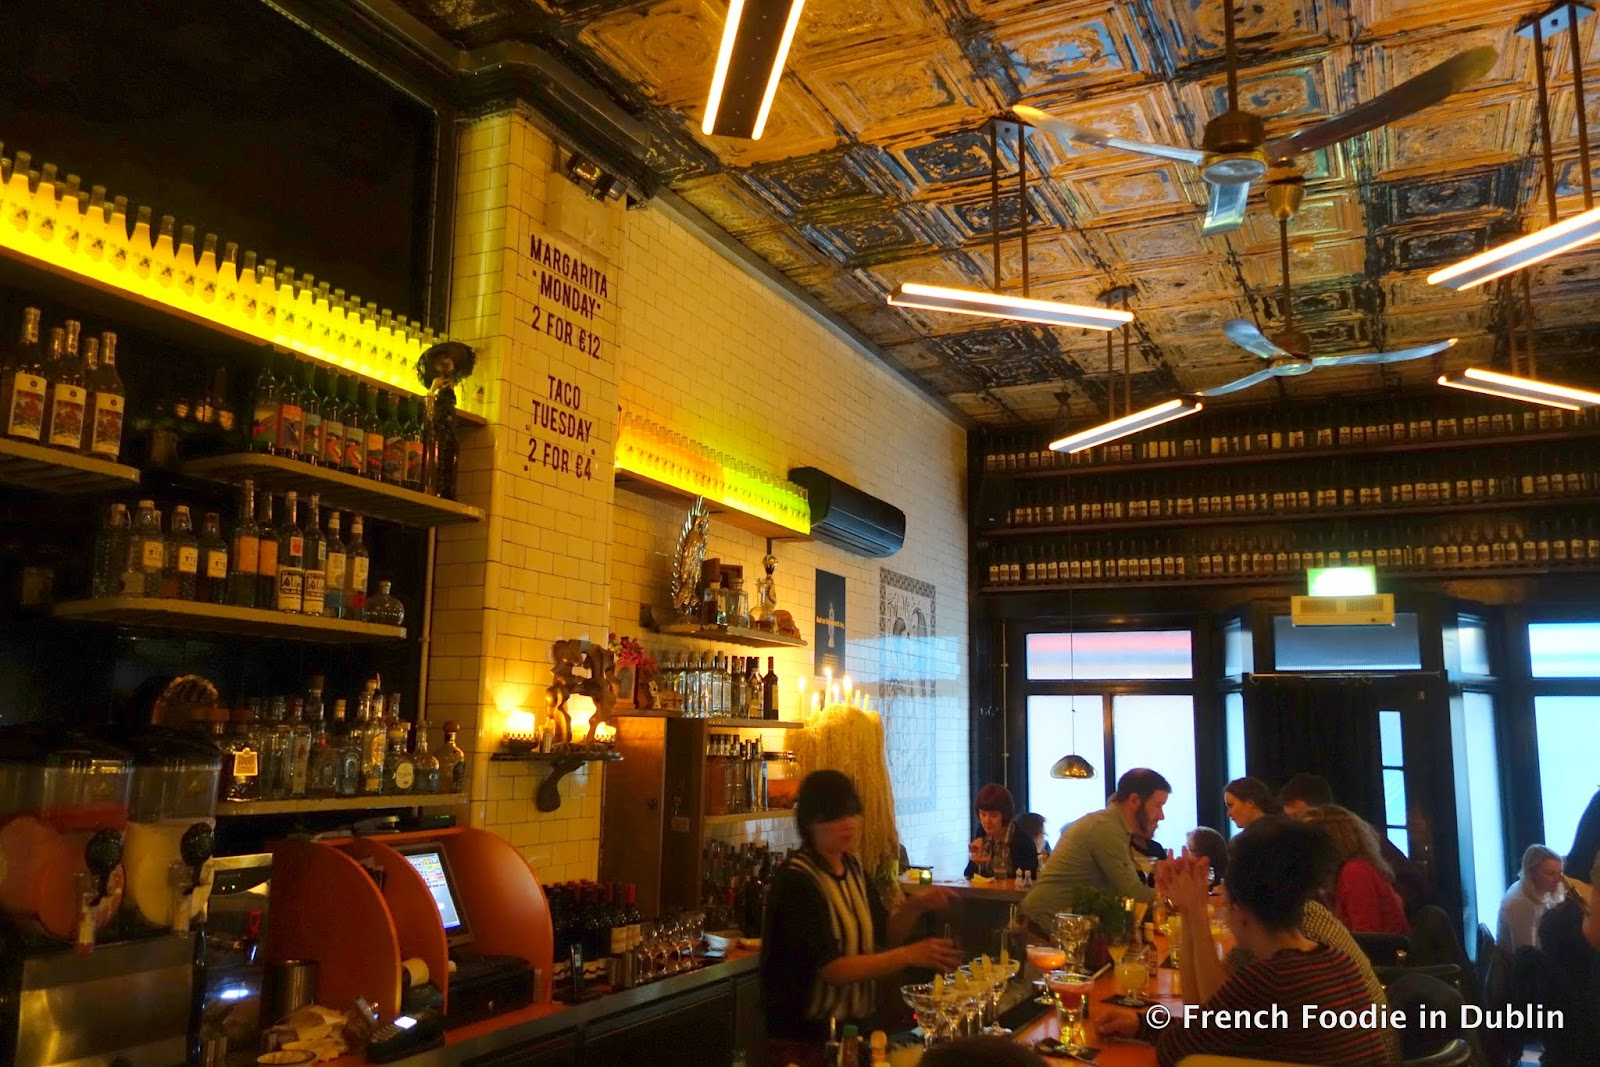 The Sexiest Mexican Restaurant In Dublin 777 French